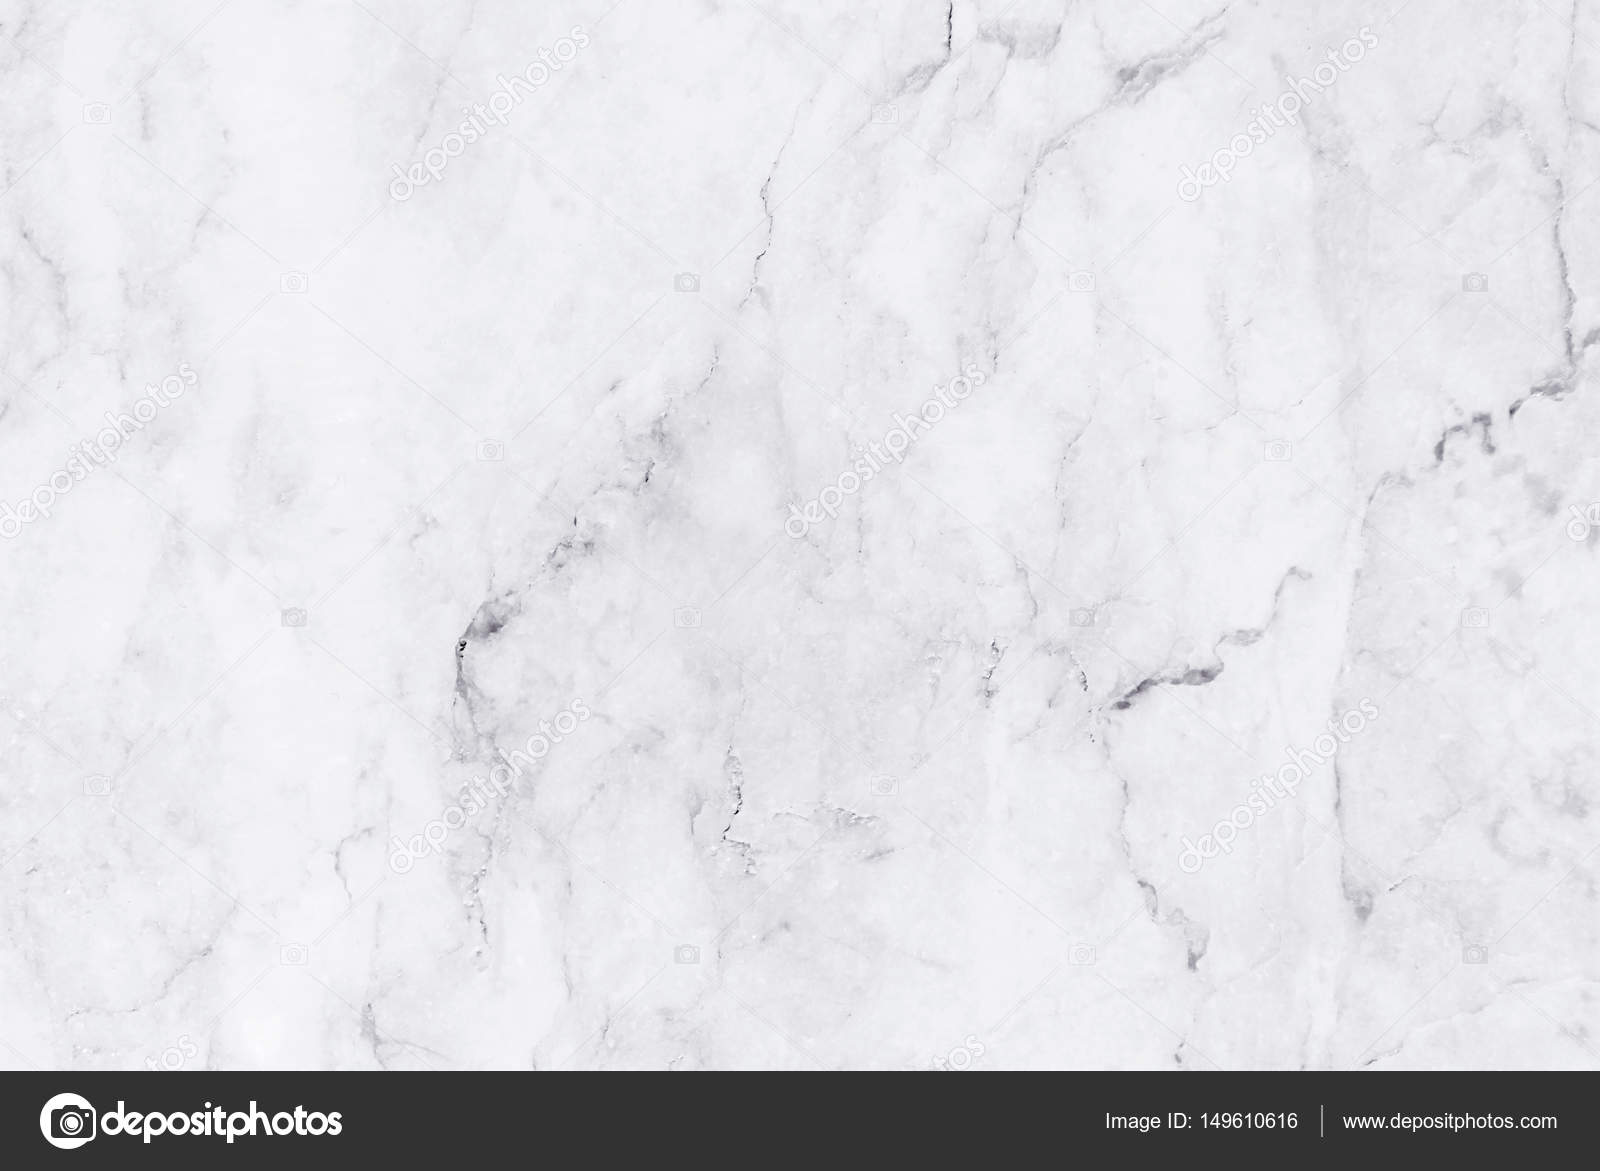 Popular Wallpaper Marble Background - depositphotos_149610616-stock-photo-white-marble-texture-pattern-for  2018_665014.jpg